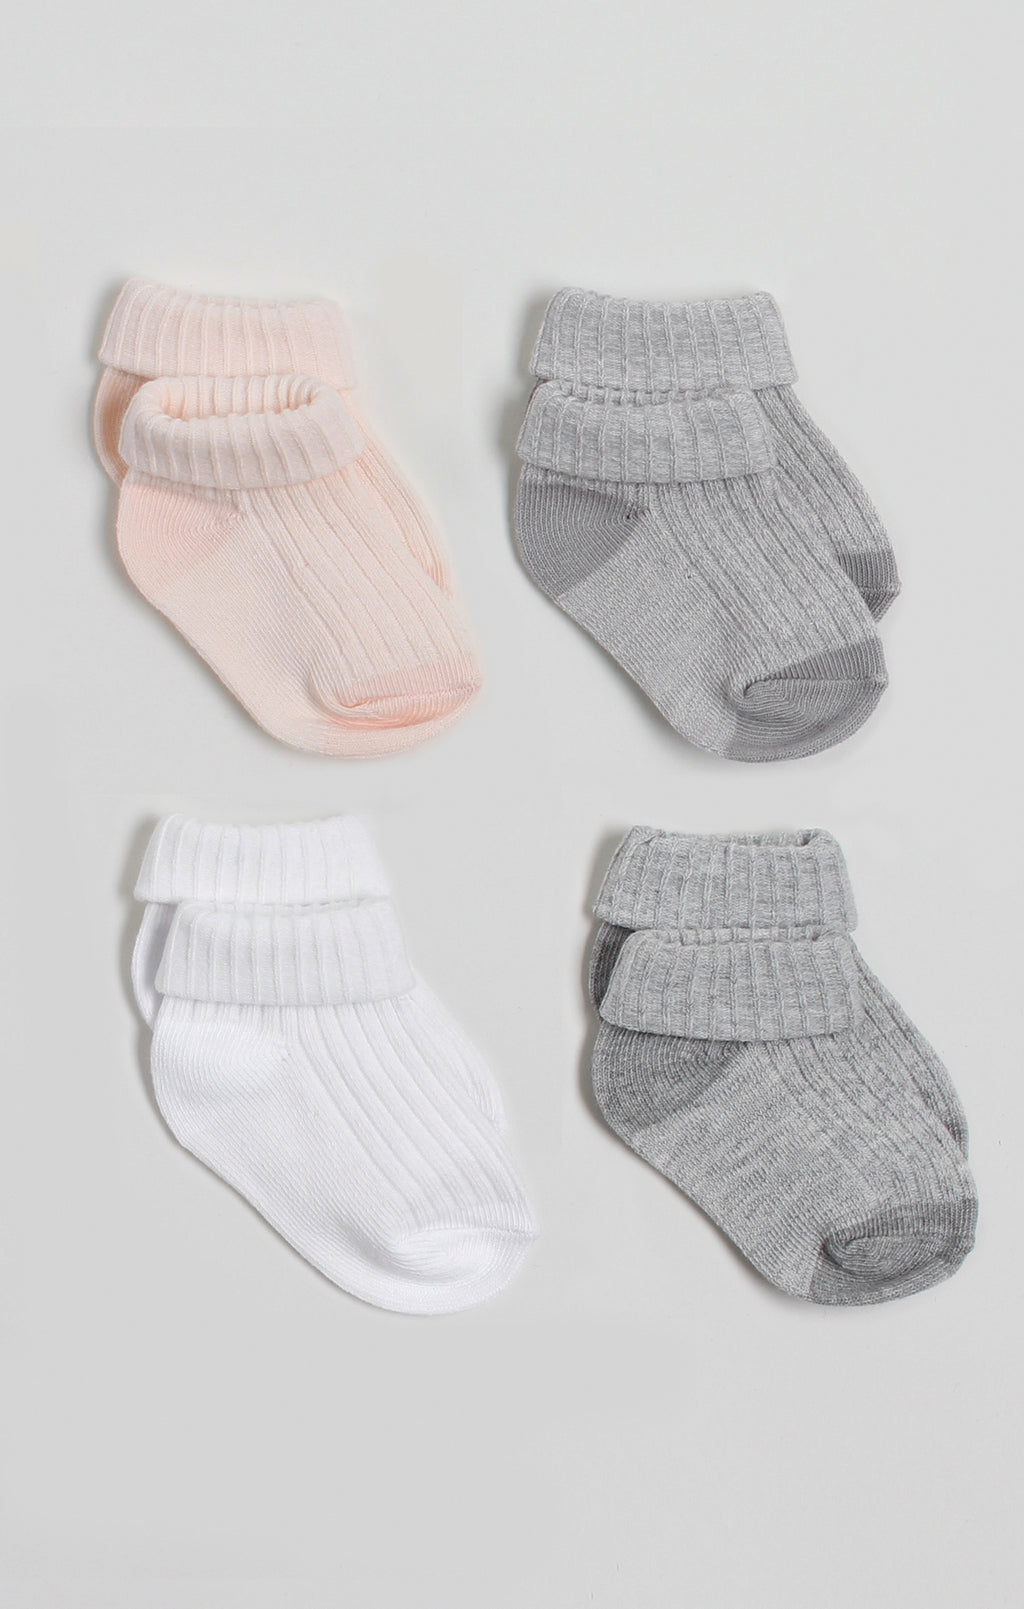 Socks - 4 Pk Baby Girl Turn-Cuff Crew Socks | Baby Accessories